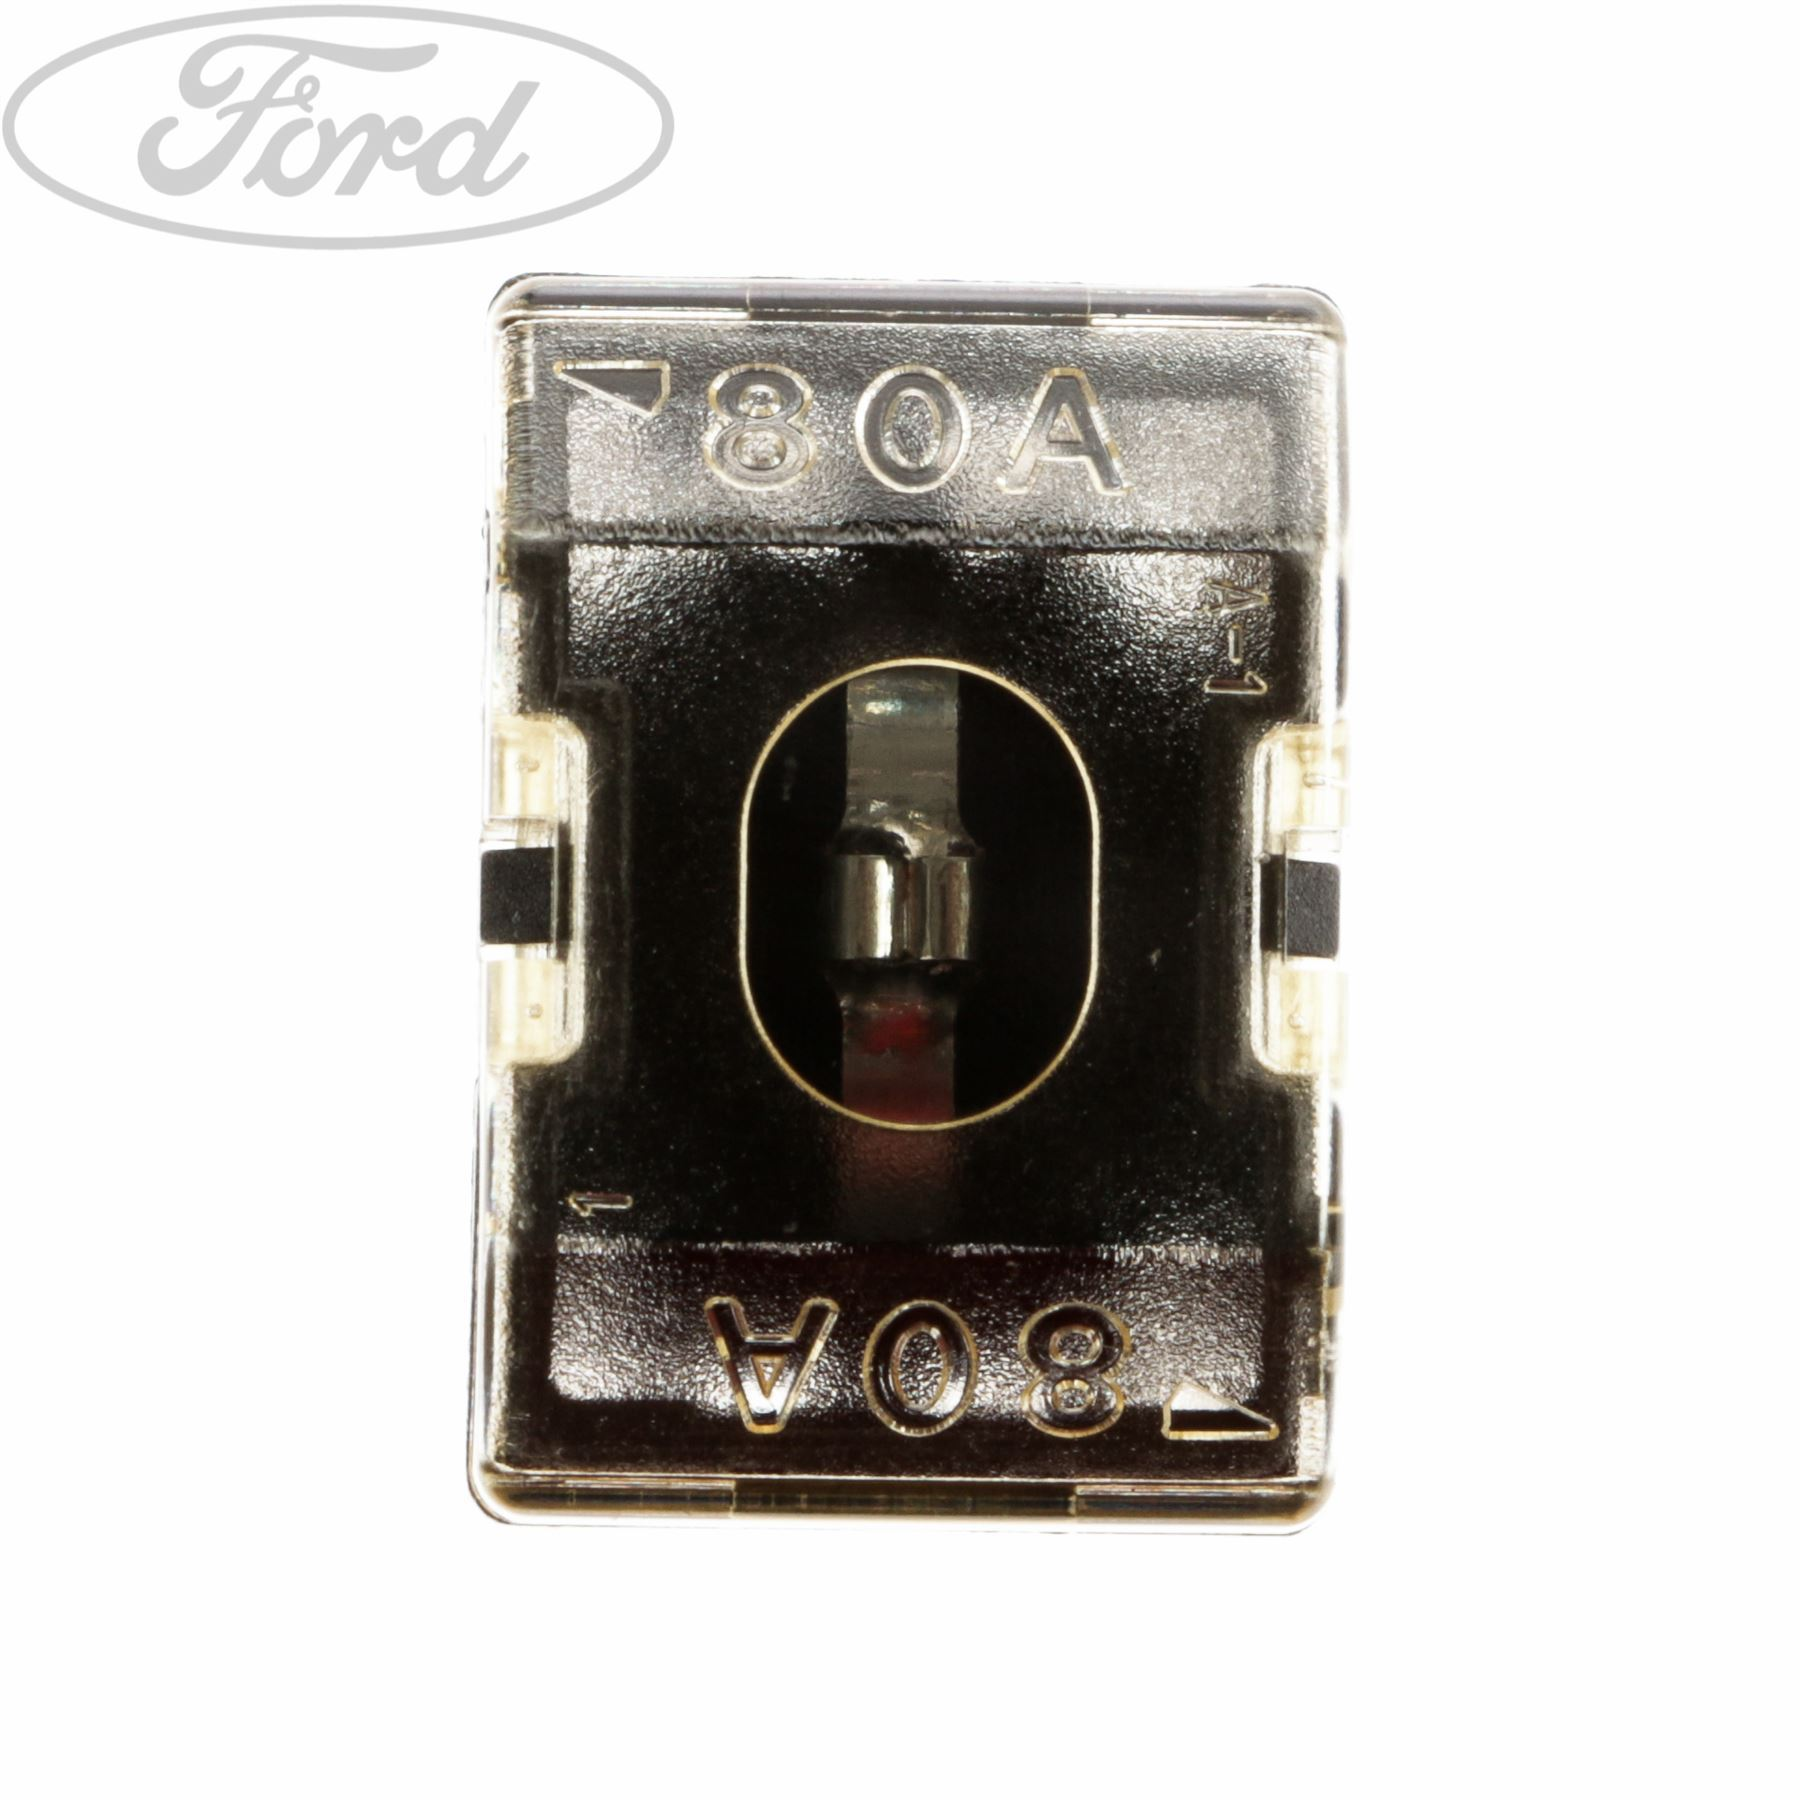 hight resolution of details about genuine ford escort orion sierra fiesta transit motorcraft 80 amp fuse 6509687